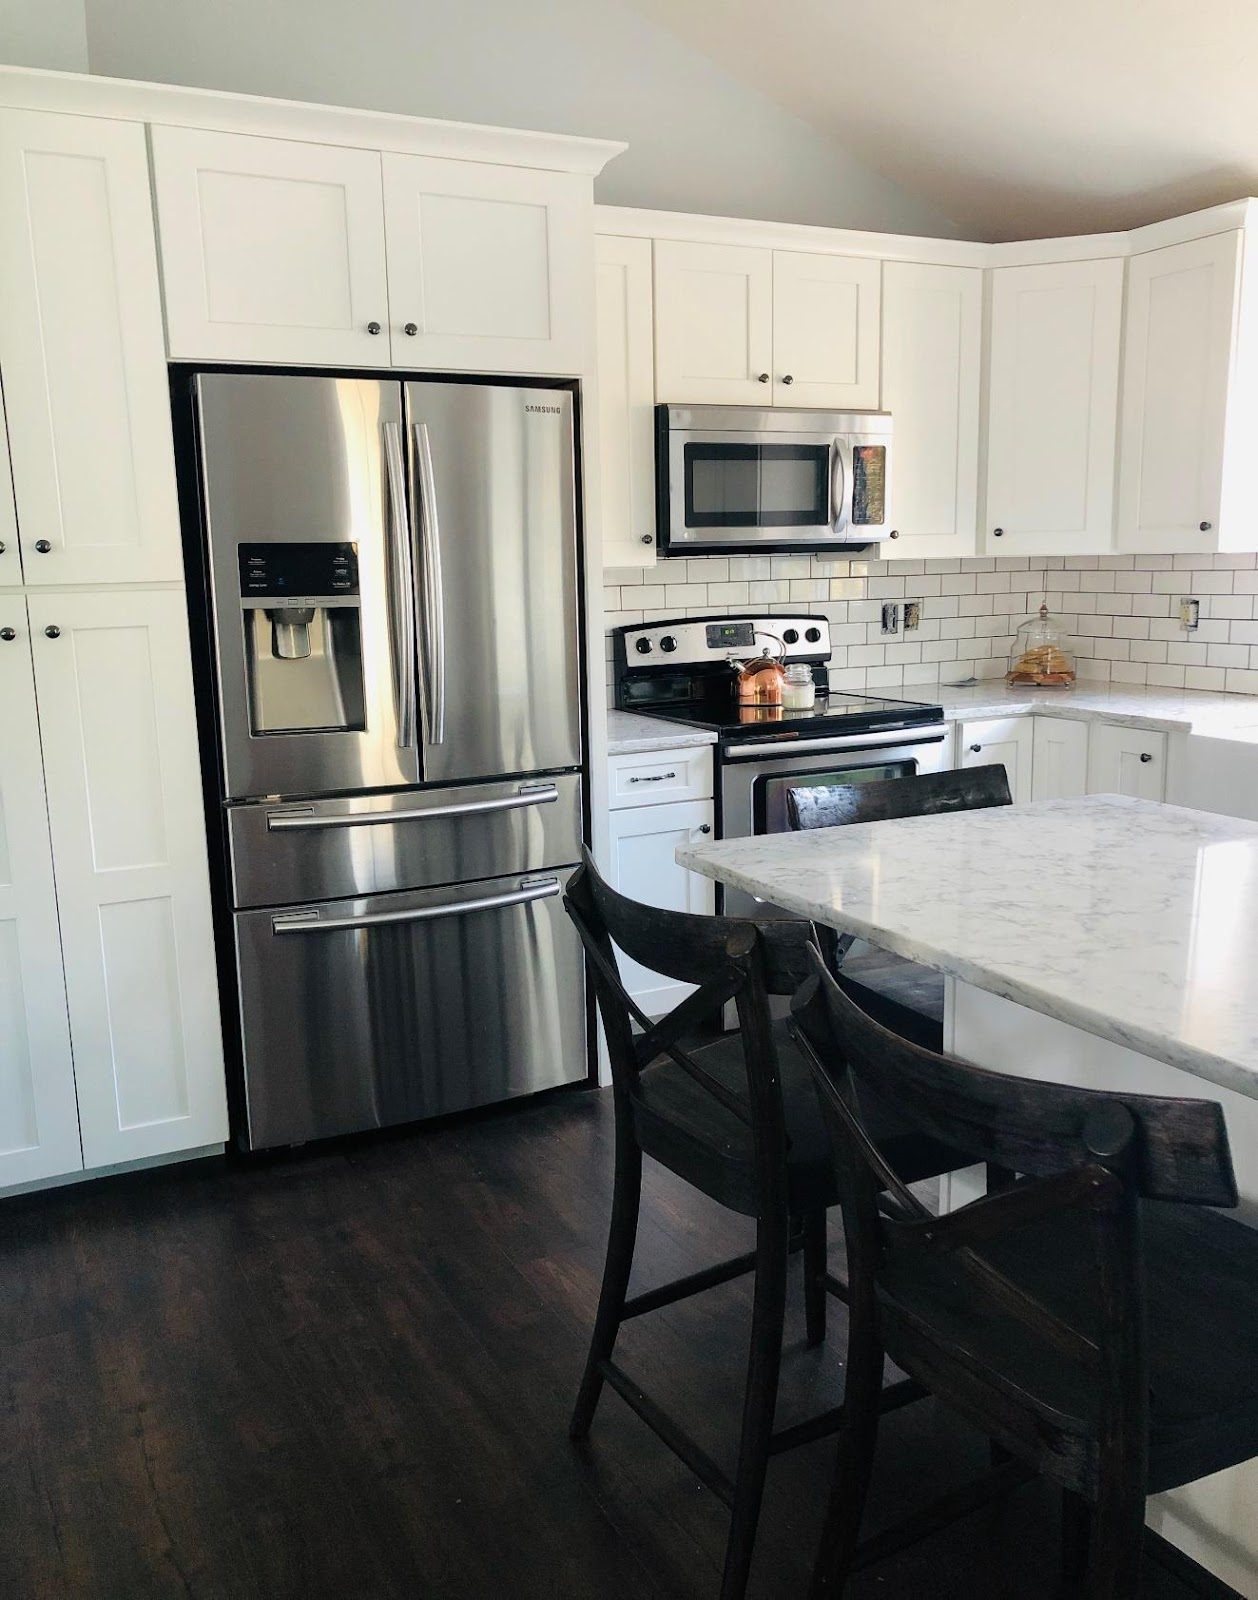 A kitchen with stainless steel appliances  Description automatically generated